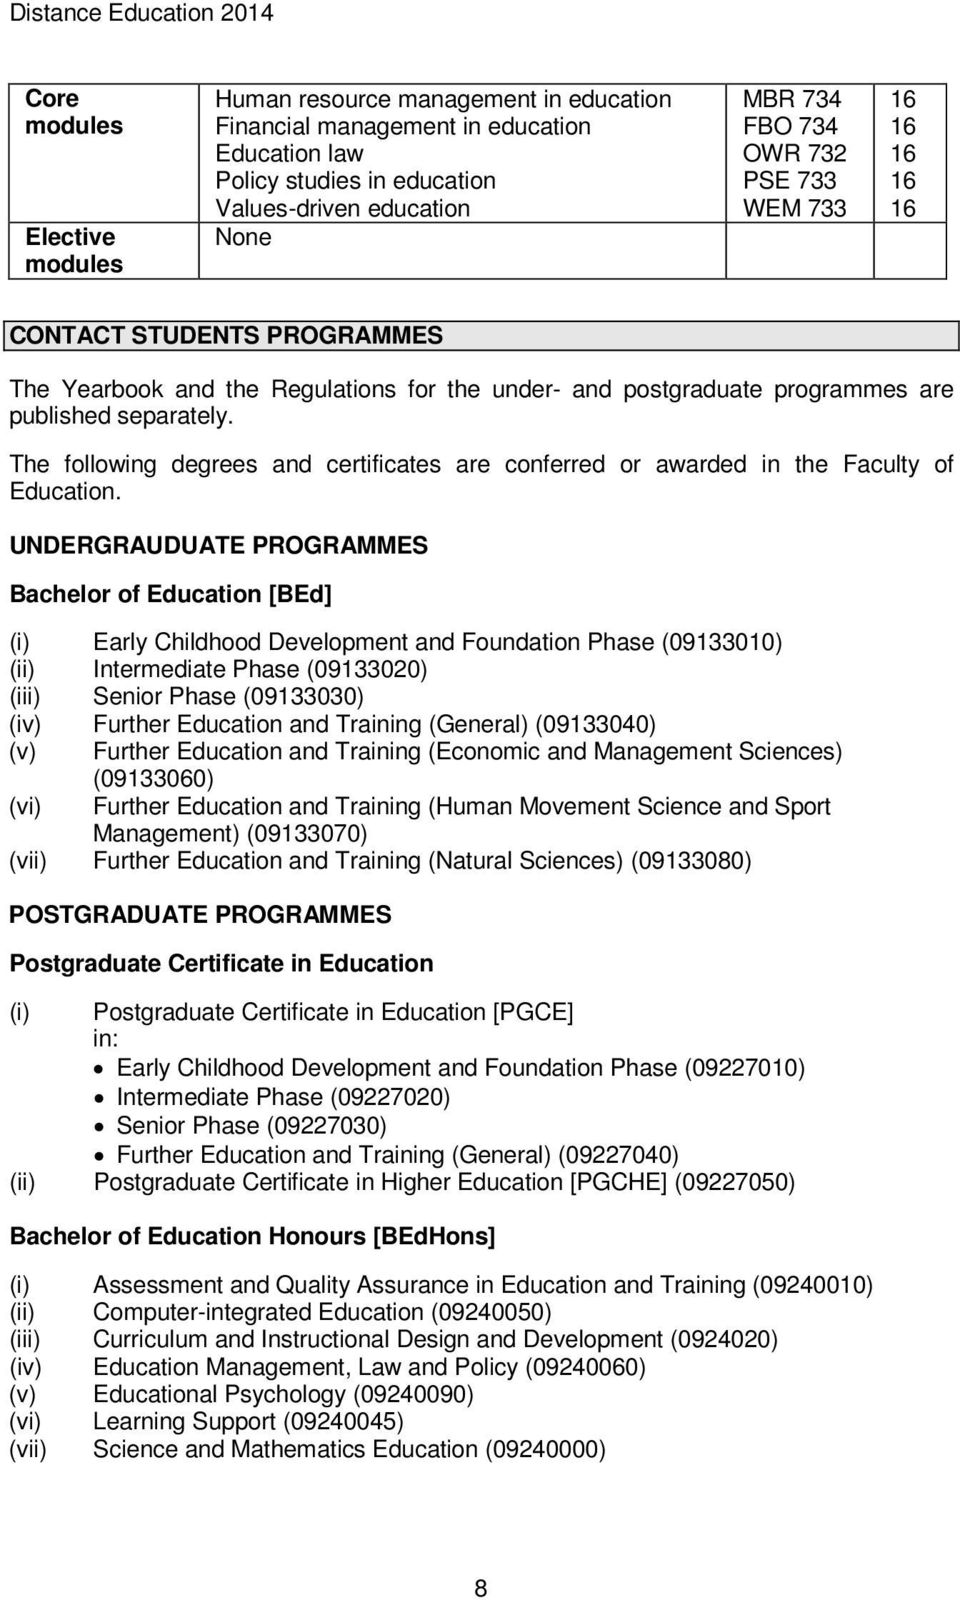 The following degrees and certificates are conferred or awarded in the Faculty of Education.